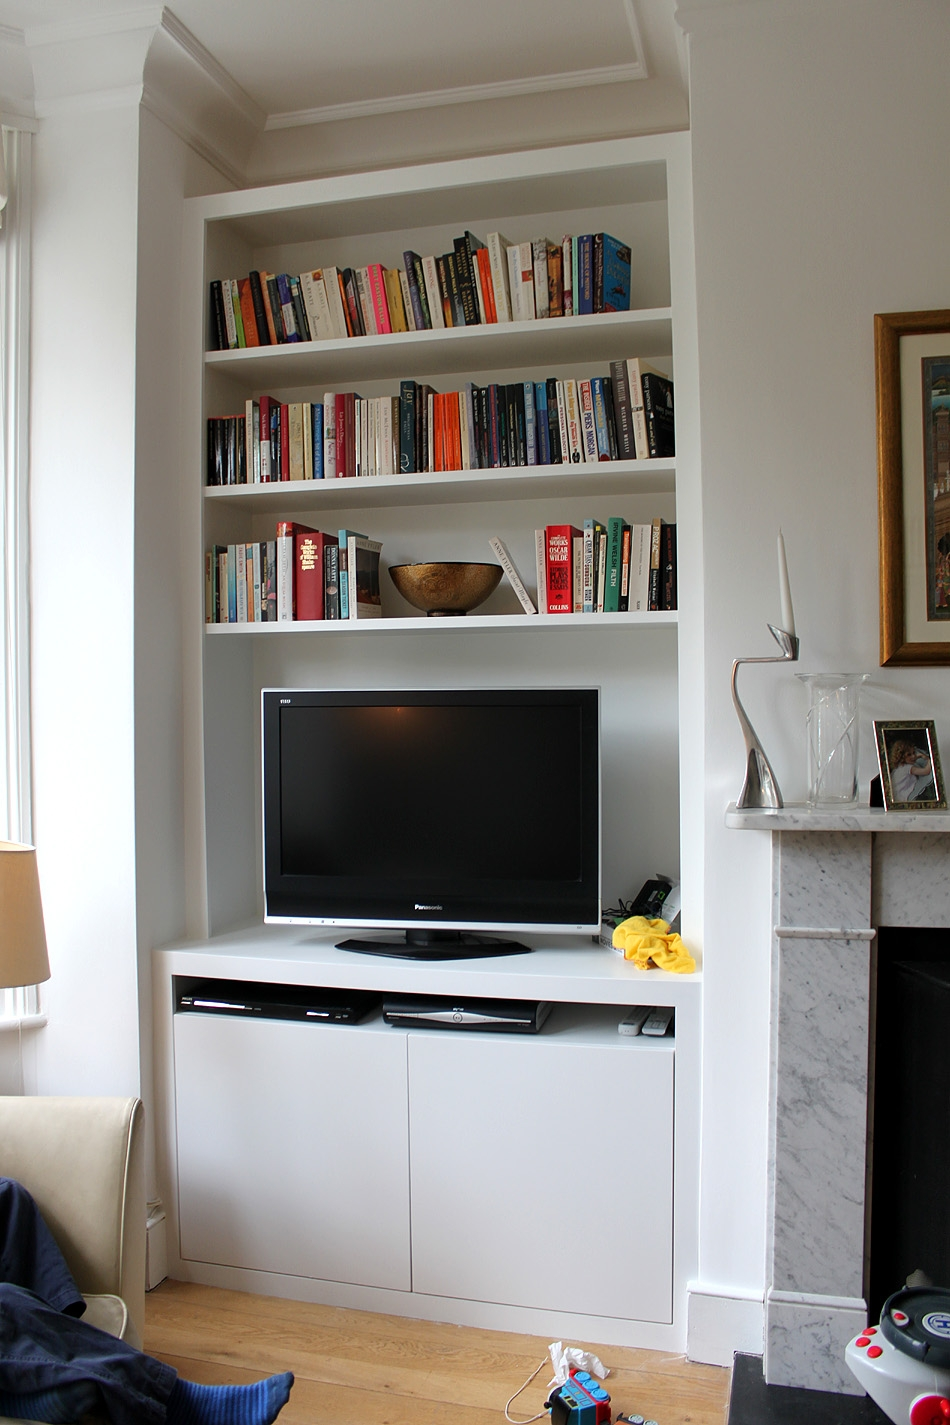 Fitted Wardrobes Bookcases Shelving Floating Shelves London Throughout Tv In Bookcase (#6 of 14)